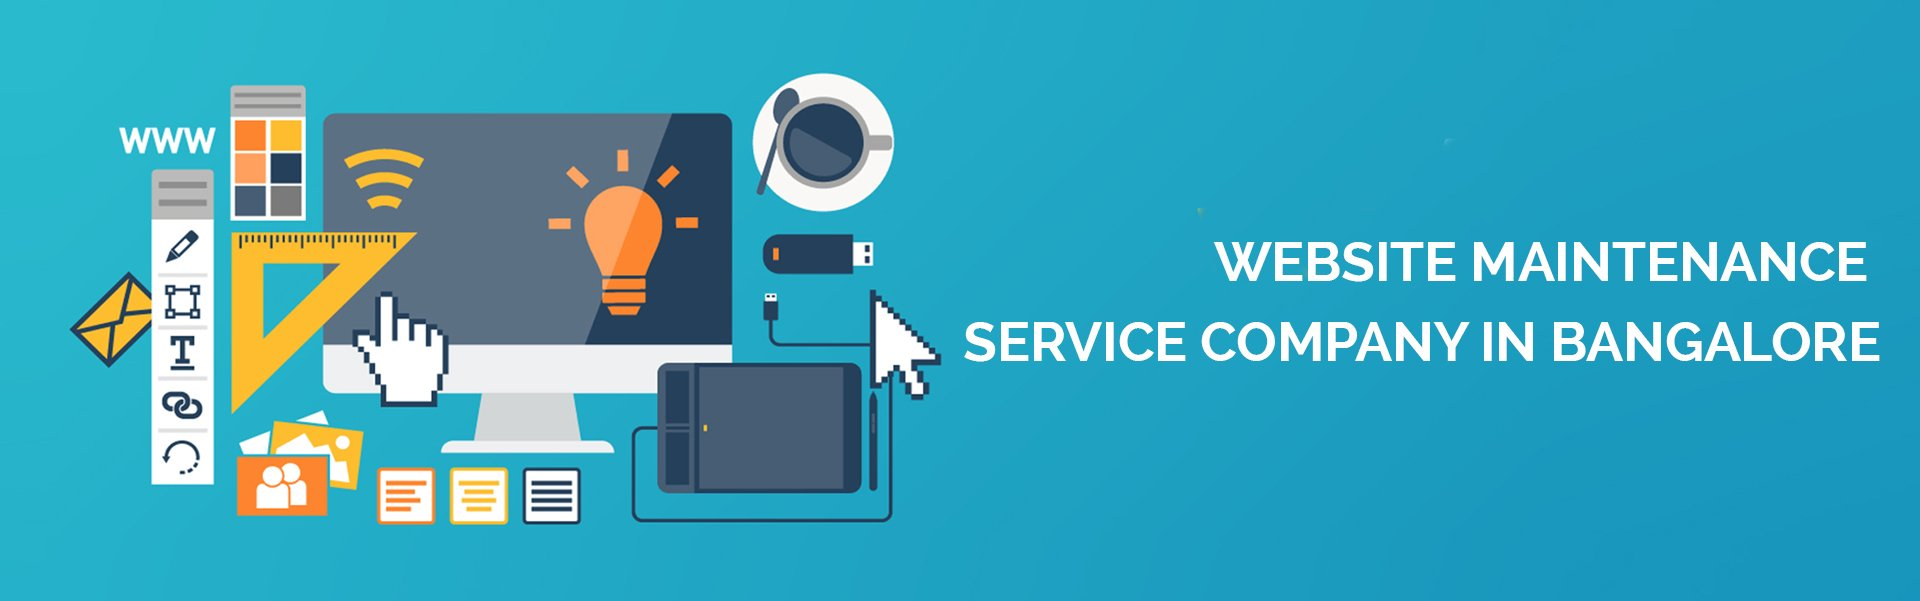 website-maintenance-service-company-in-bangalore